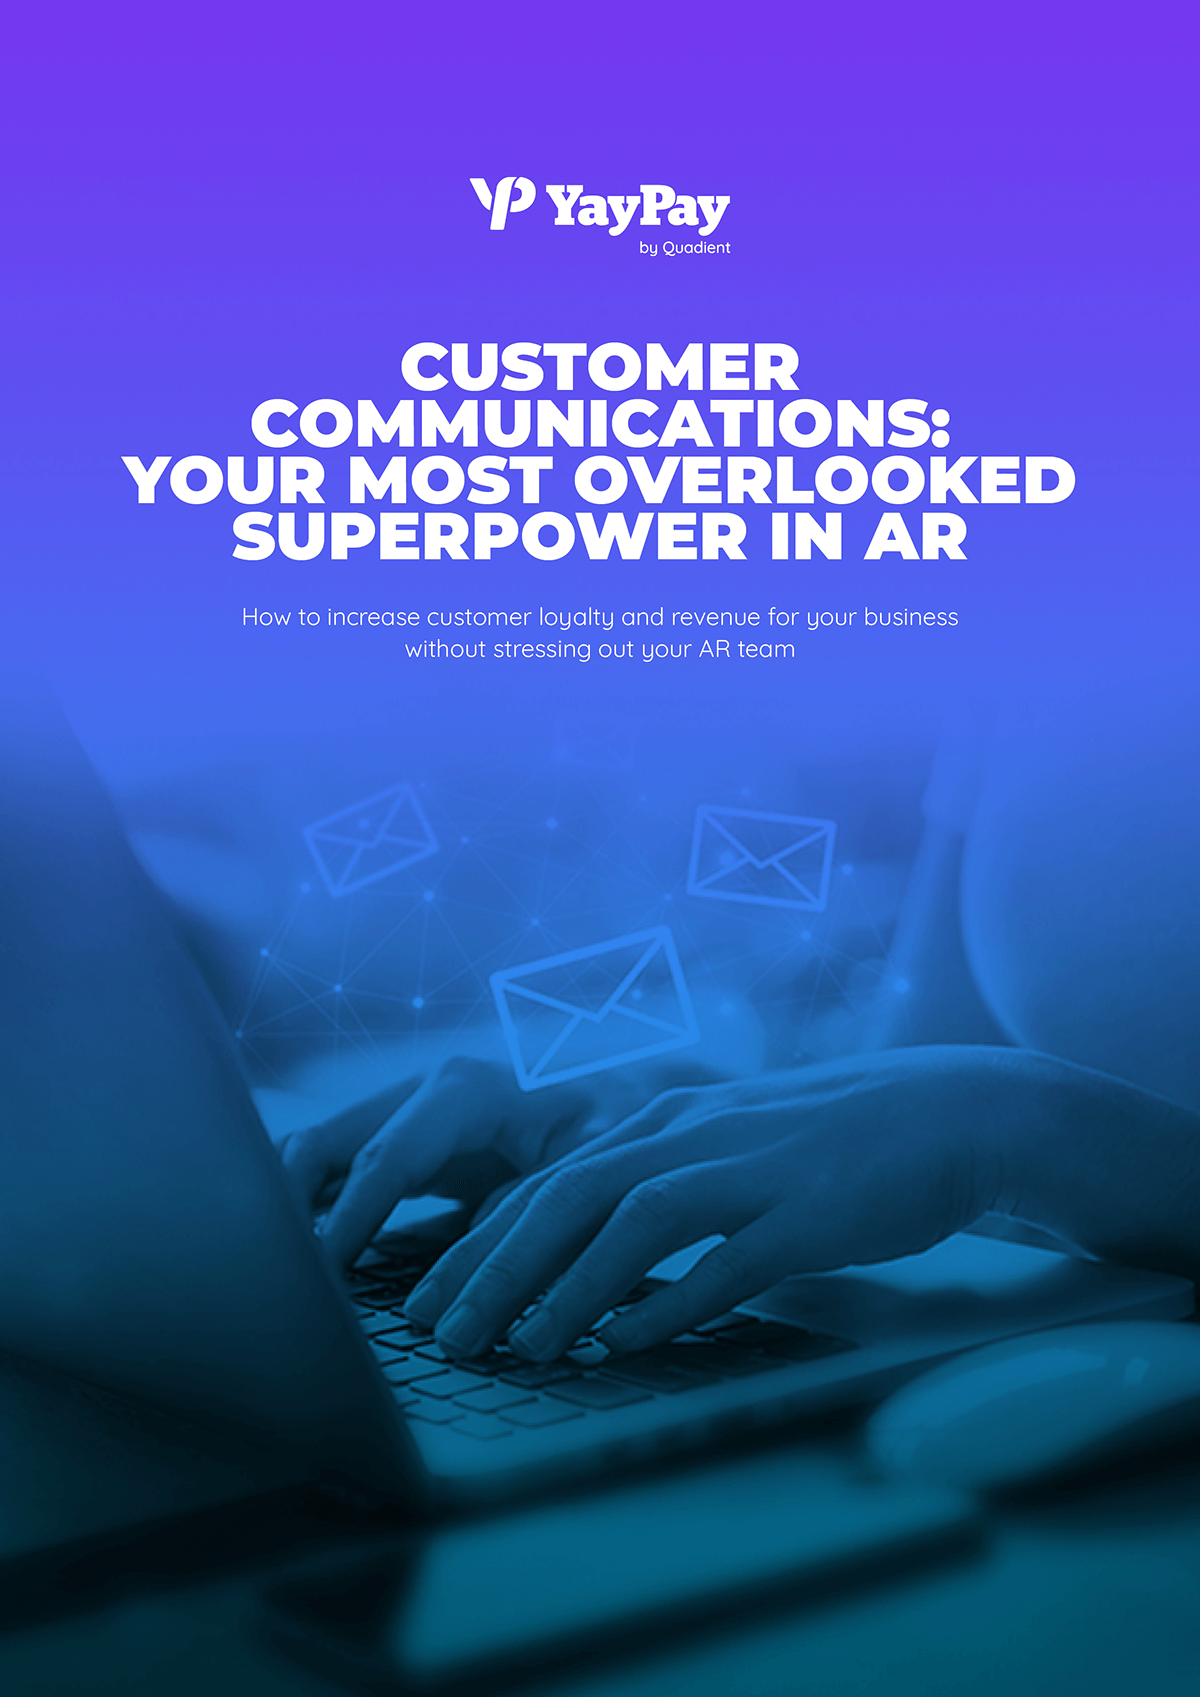 Customer Communications: Your Most Overlooked Superpower in AR